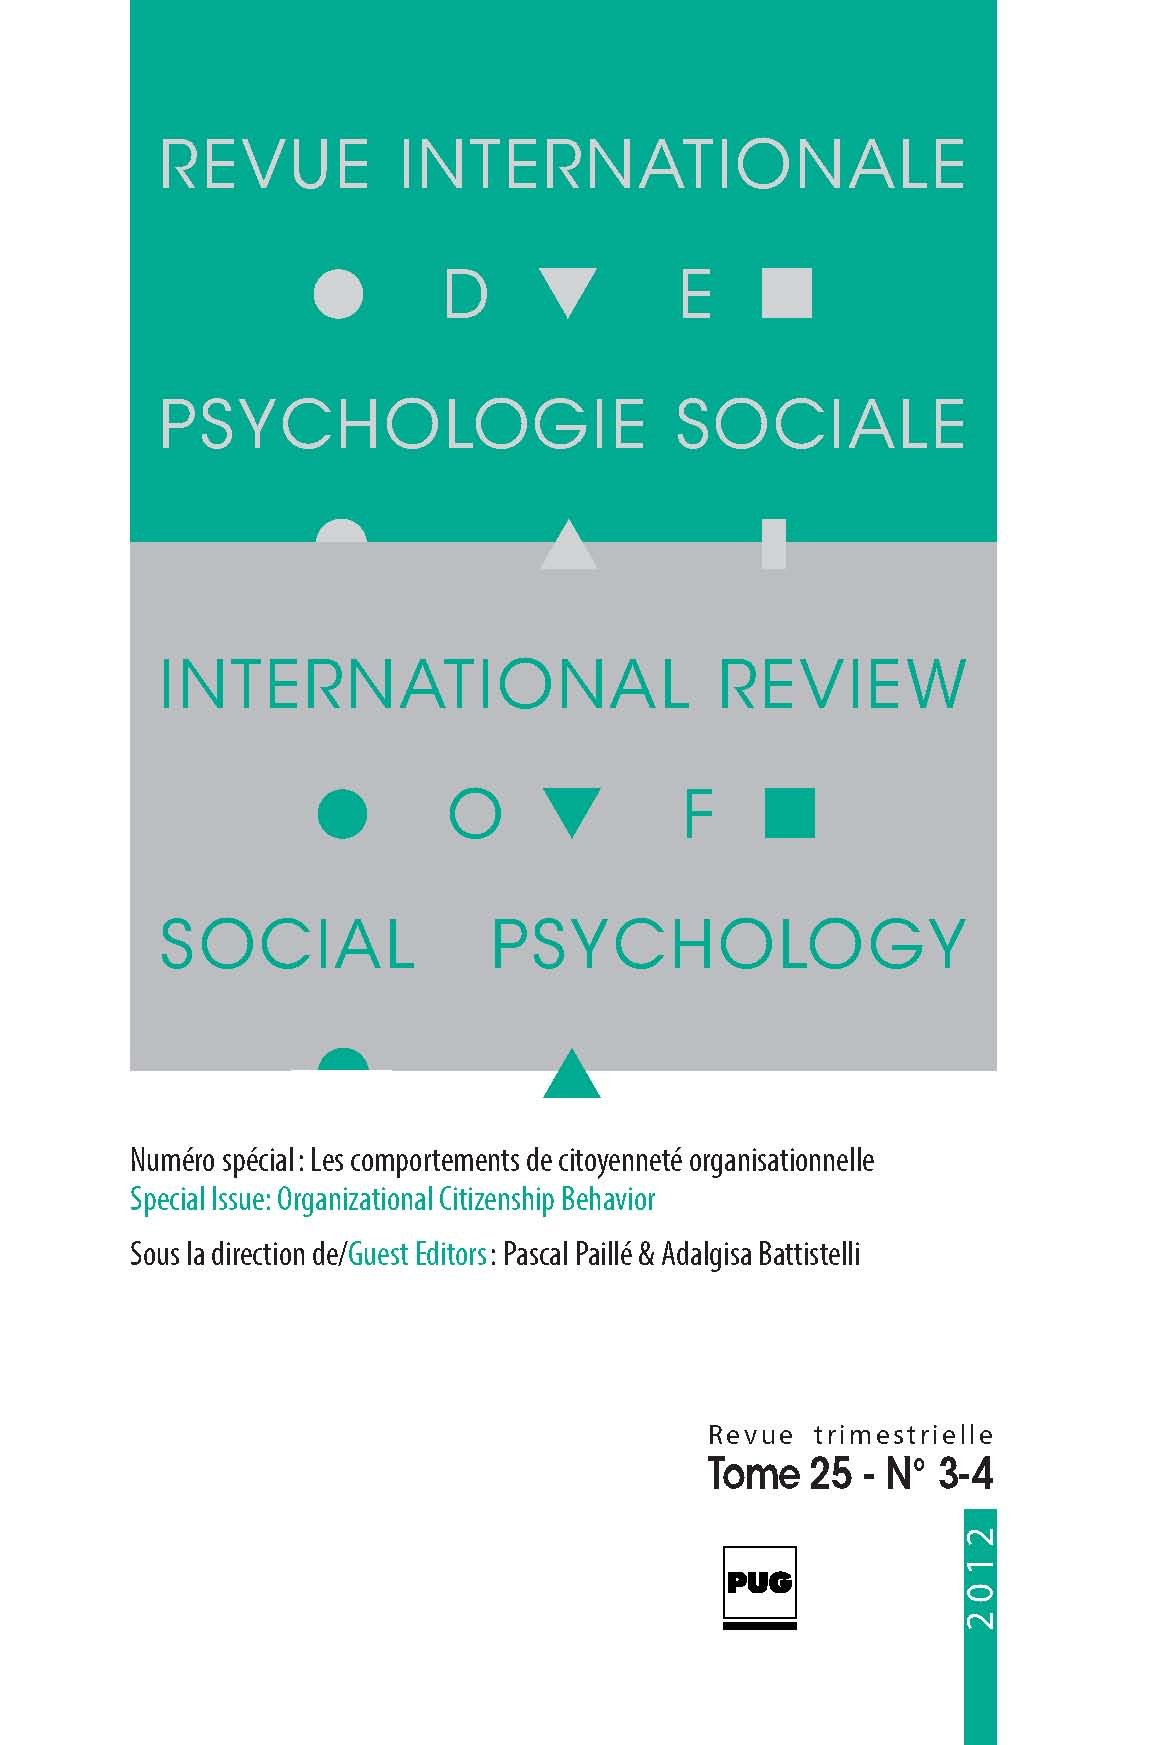 Organizational Citizenship Behavior: An Intergenerational tout Numero Des Departements Francais